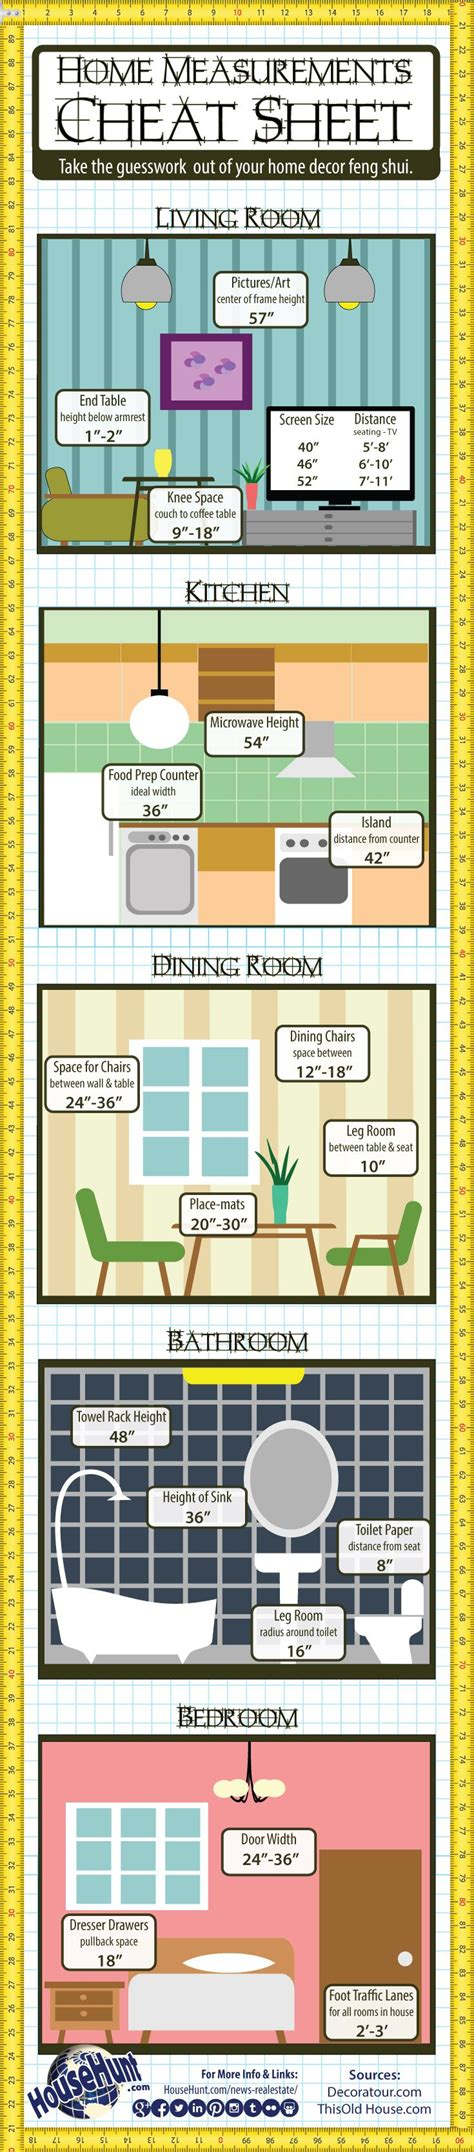 home measurements cheat sheet infographic home